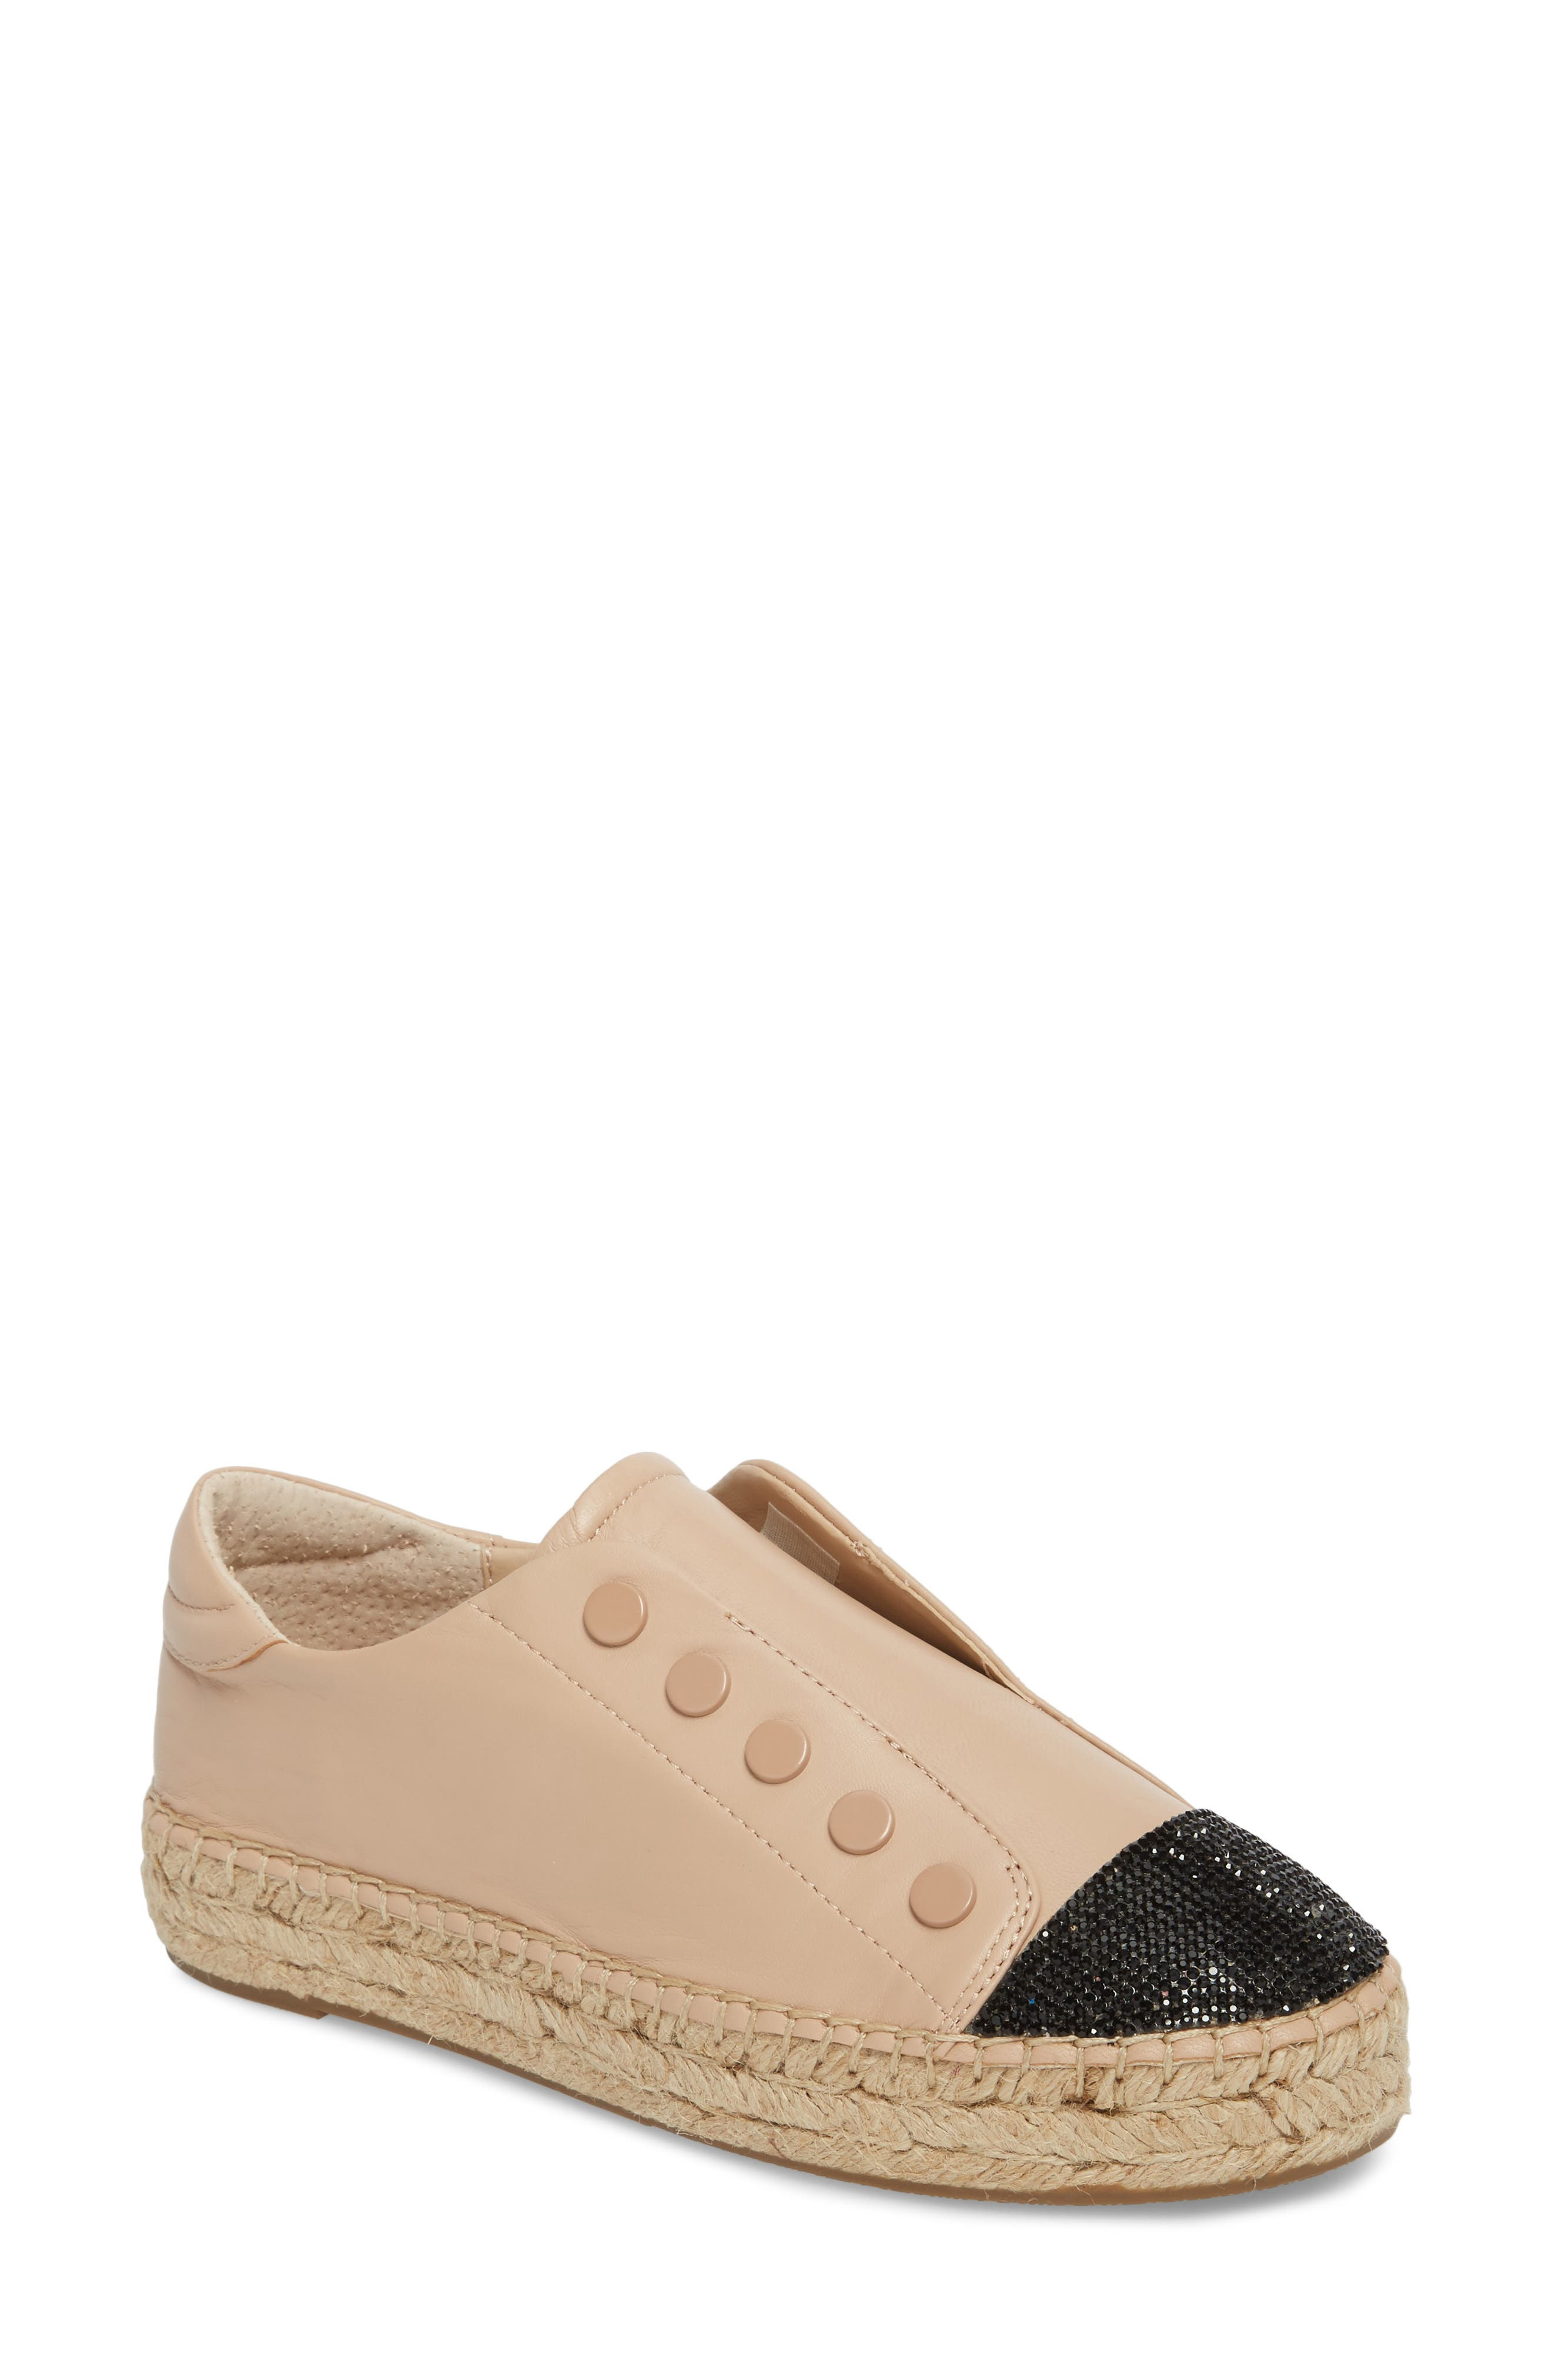 Juniper Espadrille Sneaker,                         Main,                         color, Light Latte